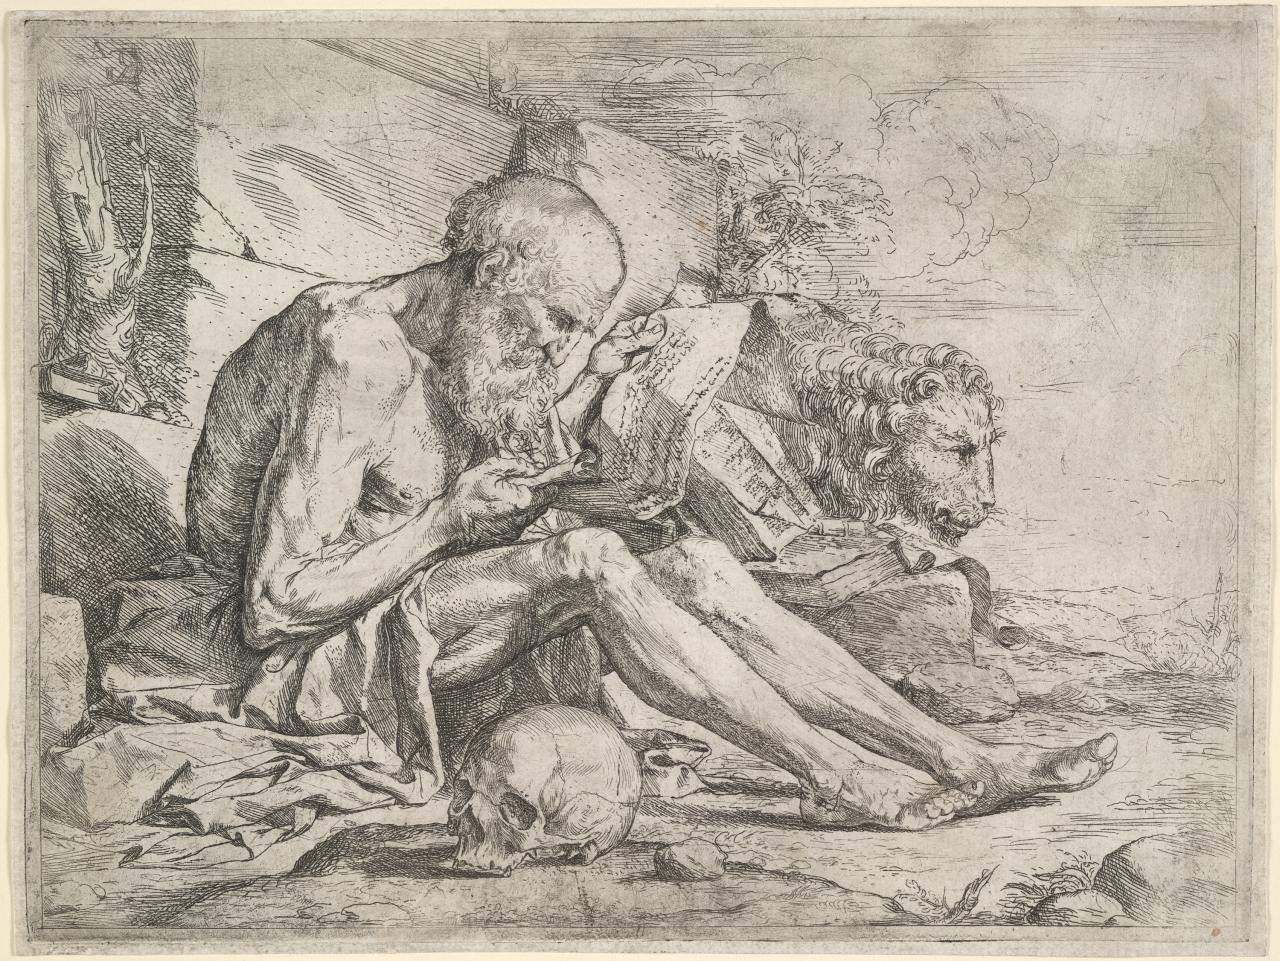 St Jerome in the wilderness, reading